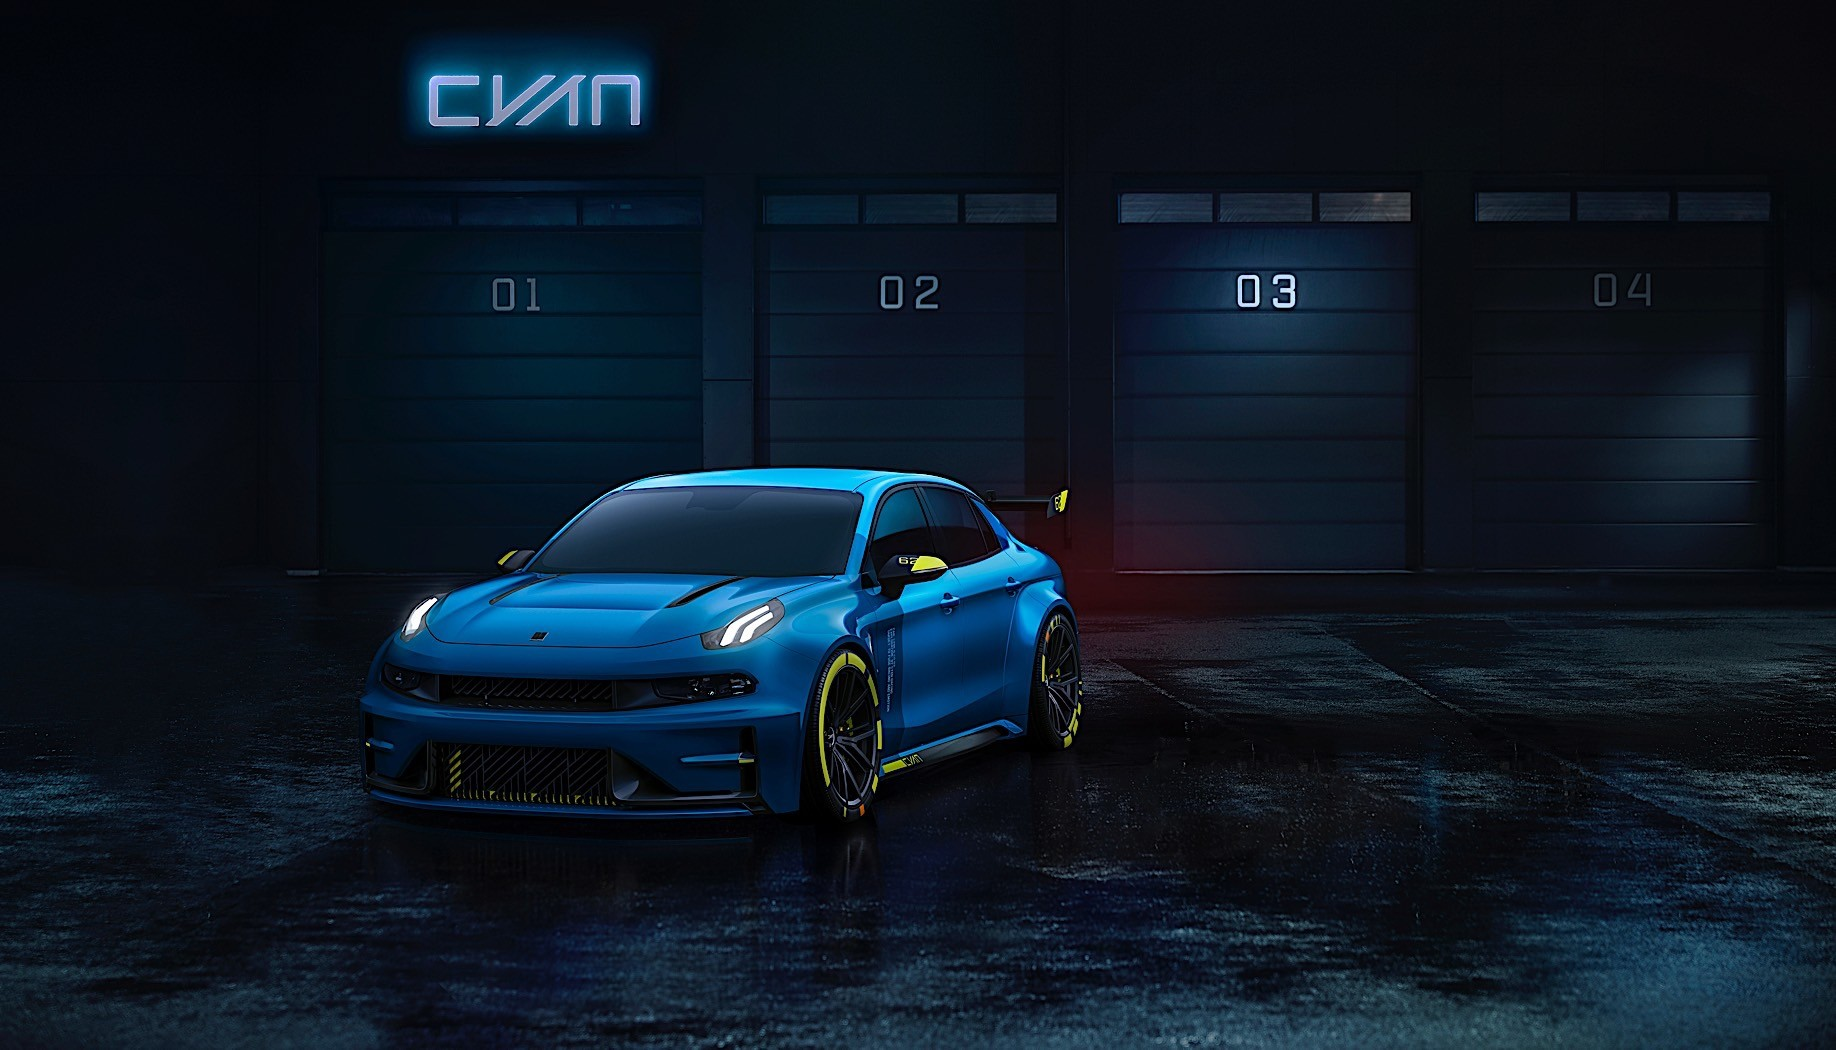 2020 Lynk & Co 03 Cyan is a 500 HP Racing Sedan, More Performance Coming - autoevolution